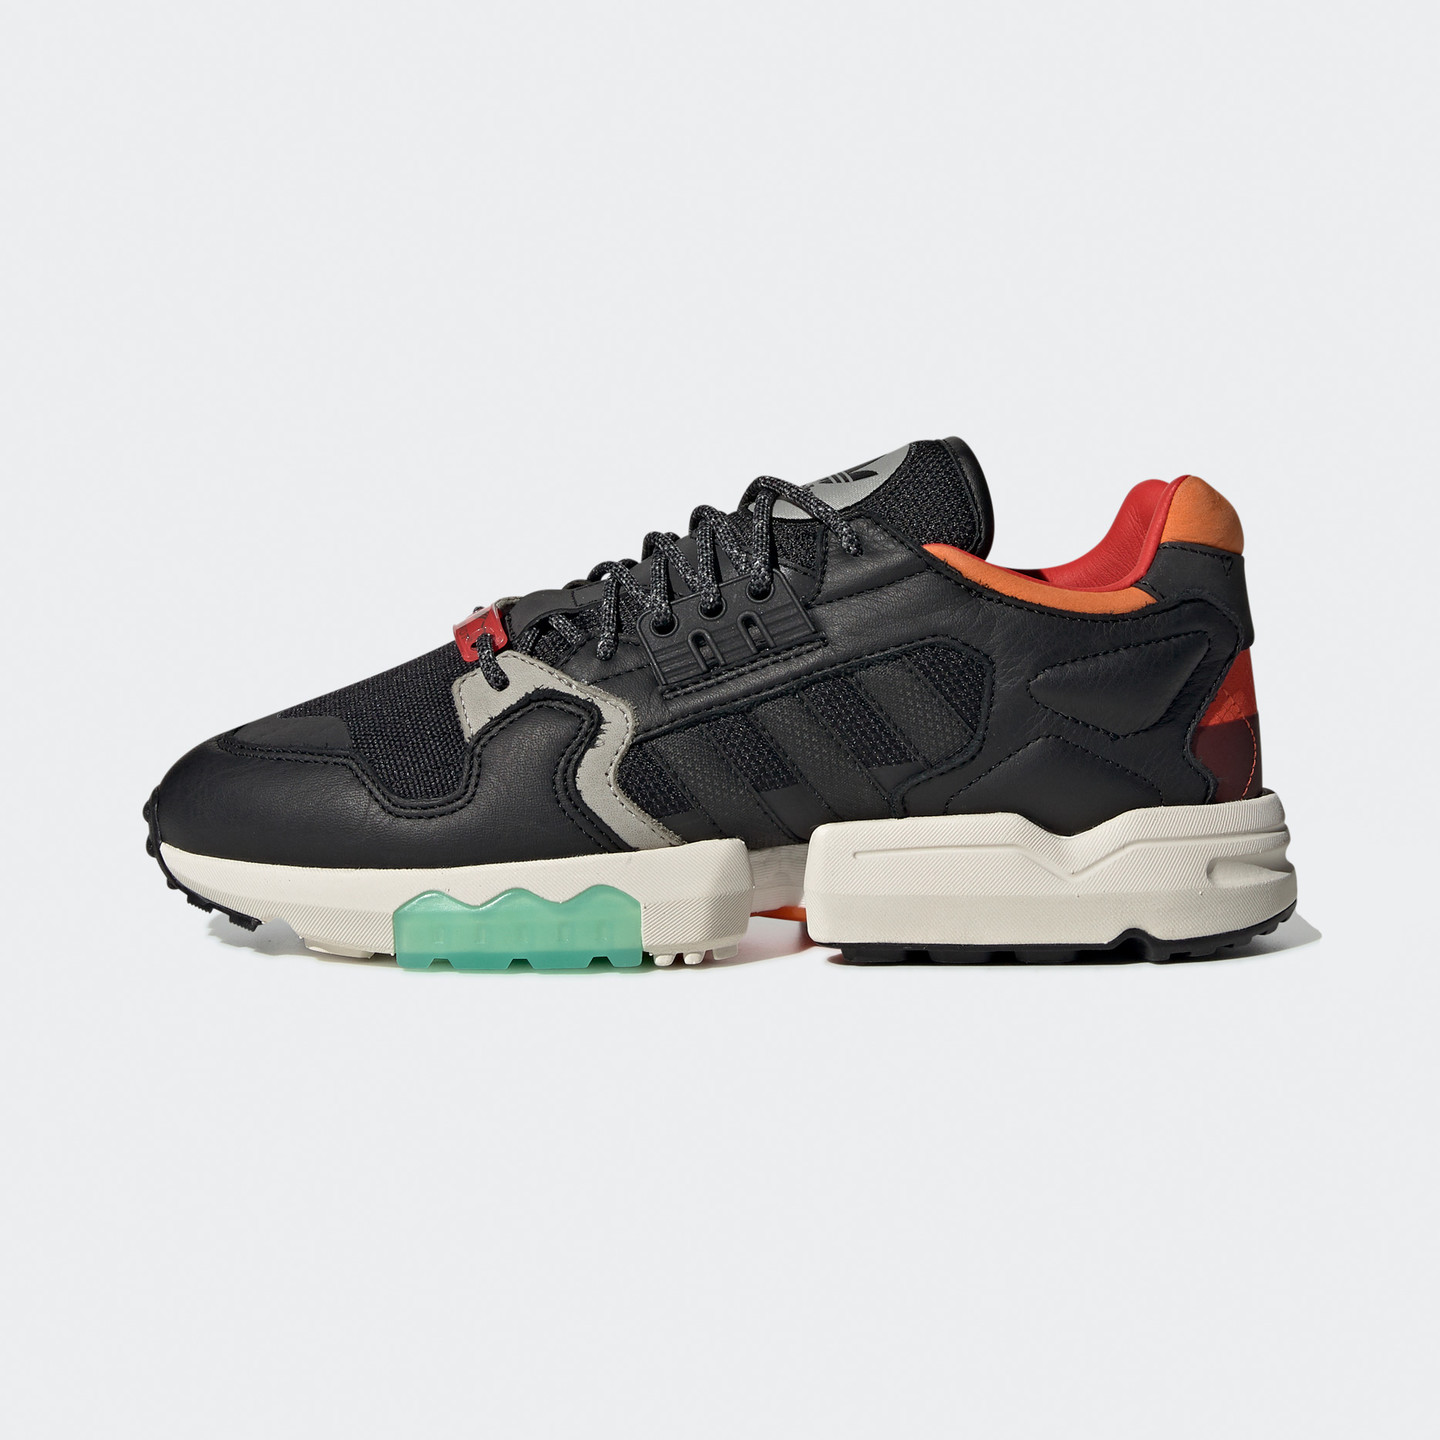 Adidas ZX Torsion Cordura Core Black / Orange / Military Green EE5553